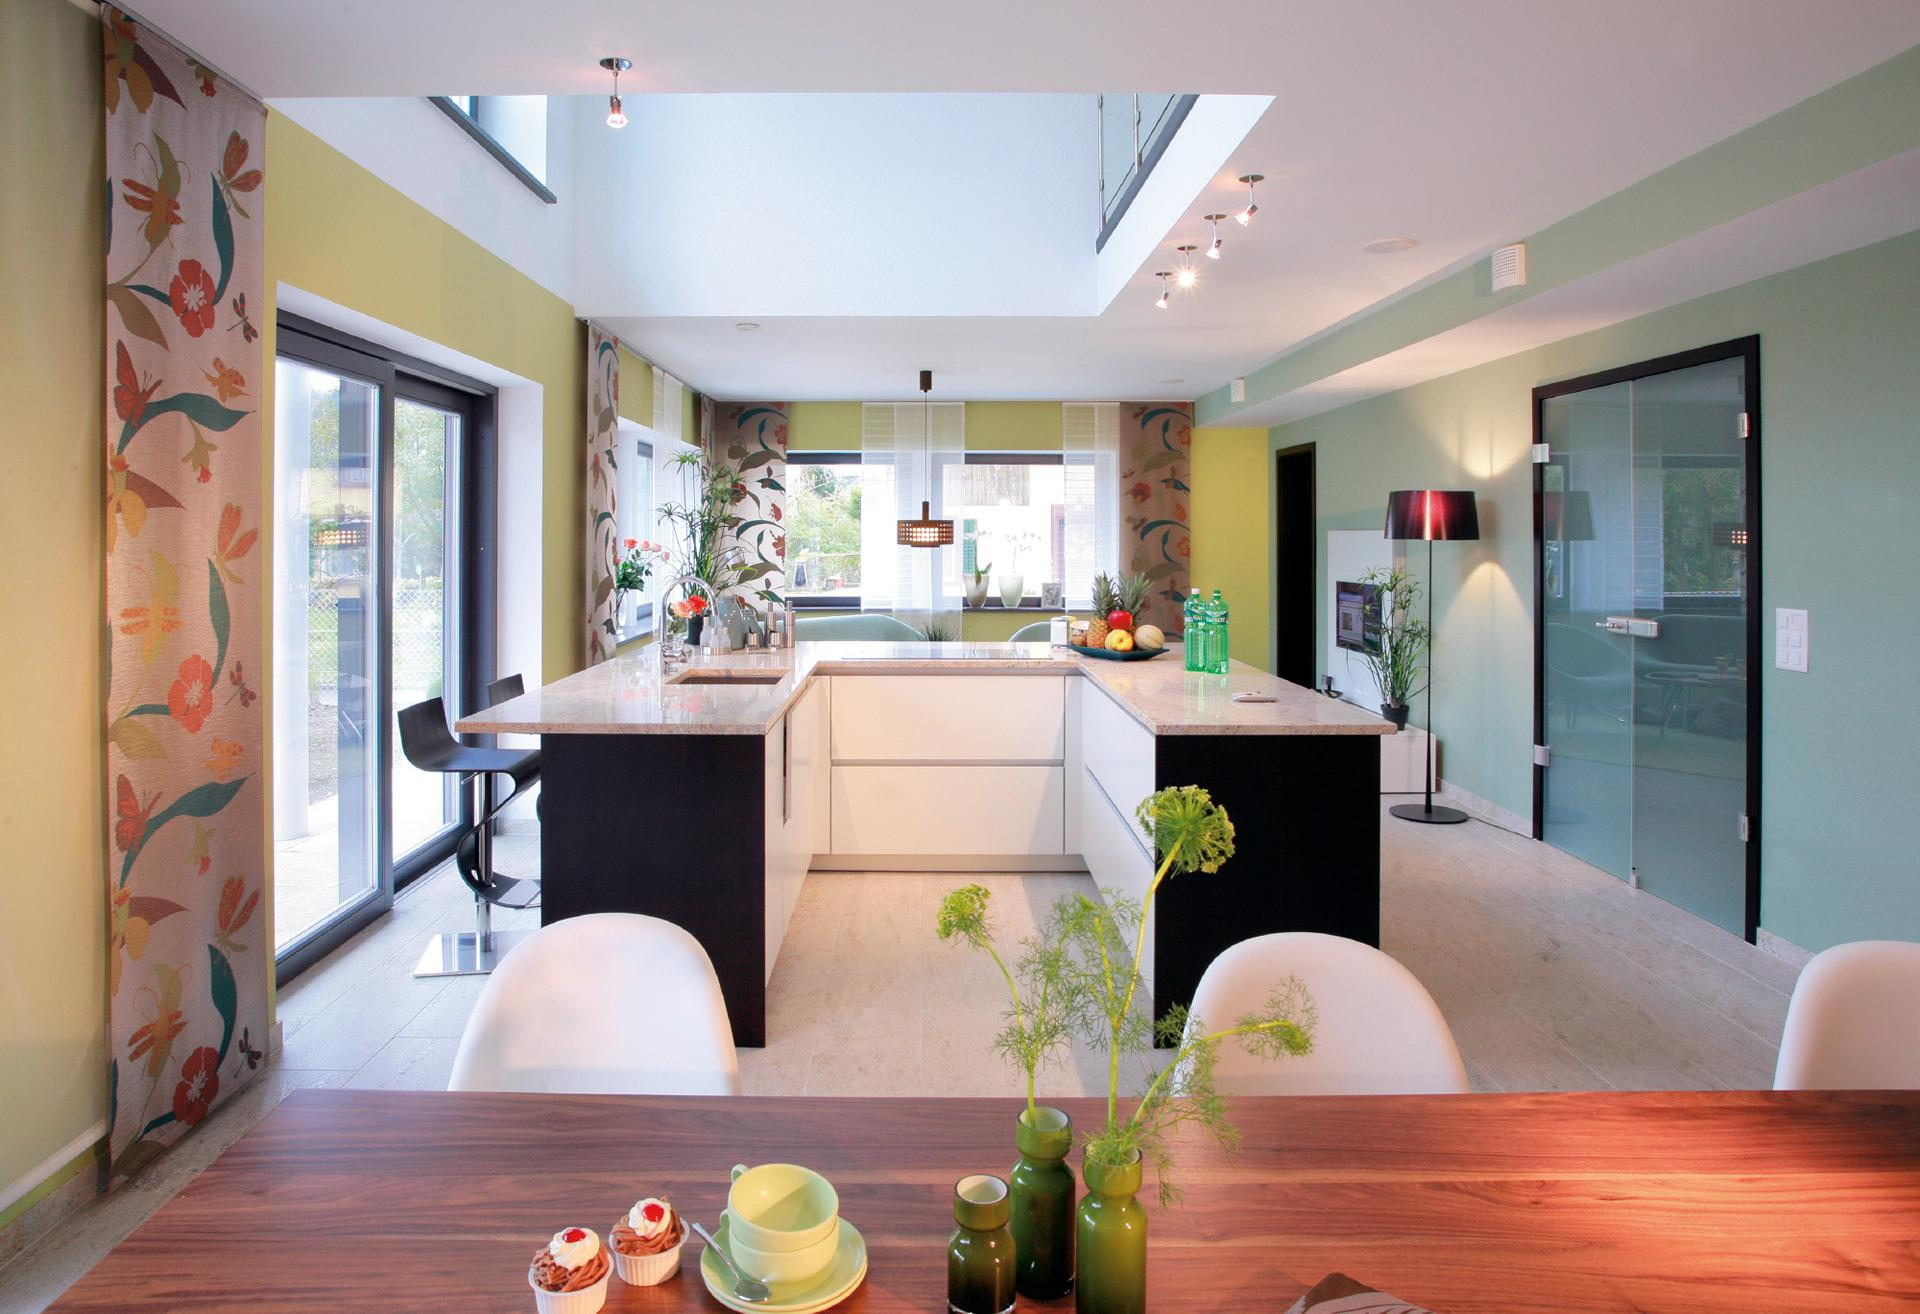 Modern kitchen with cooking island in U-shape